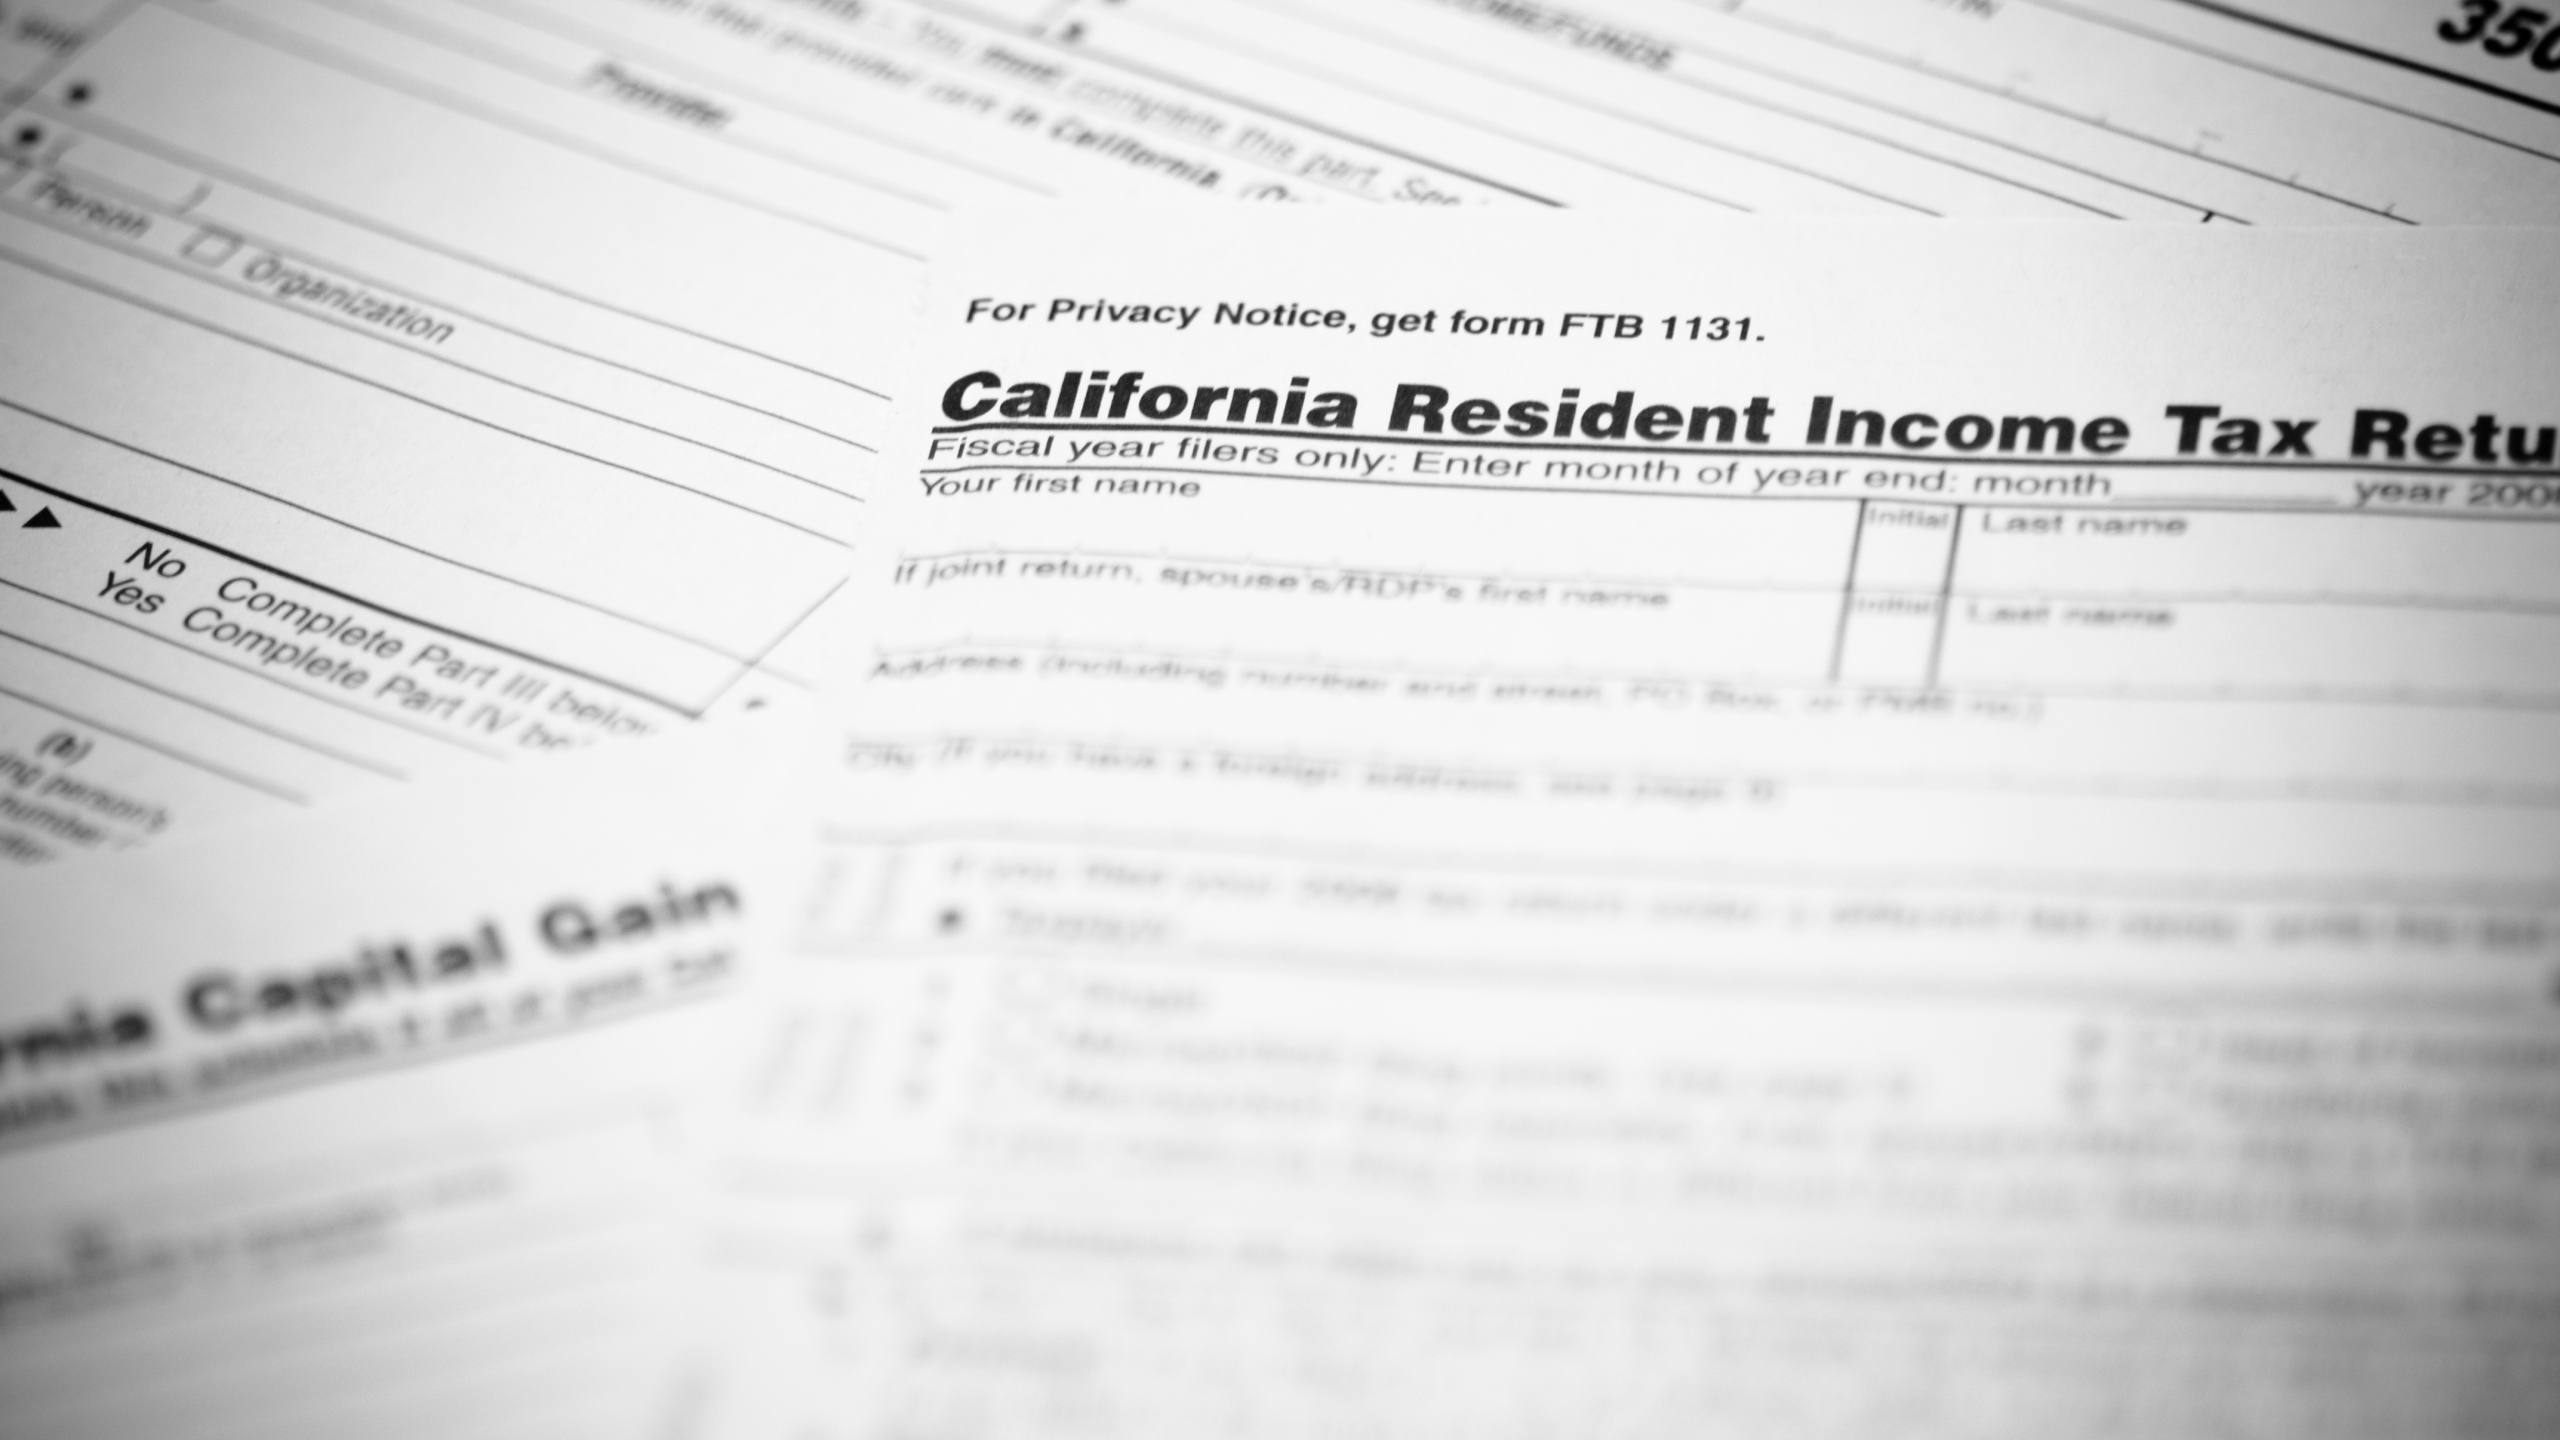 The California income tax form 540 with supplemental forms in the background in this file photo. (Credit: iStock / Getty Images Plus)